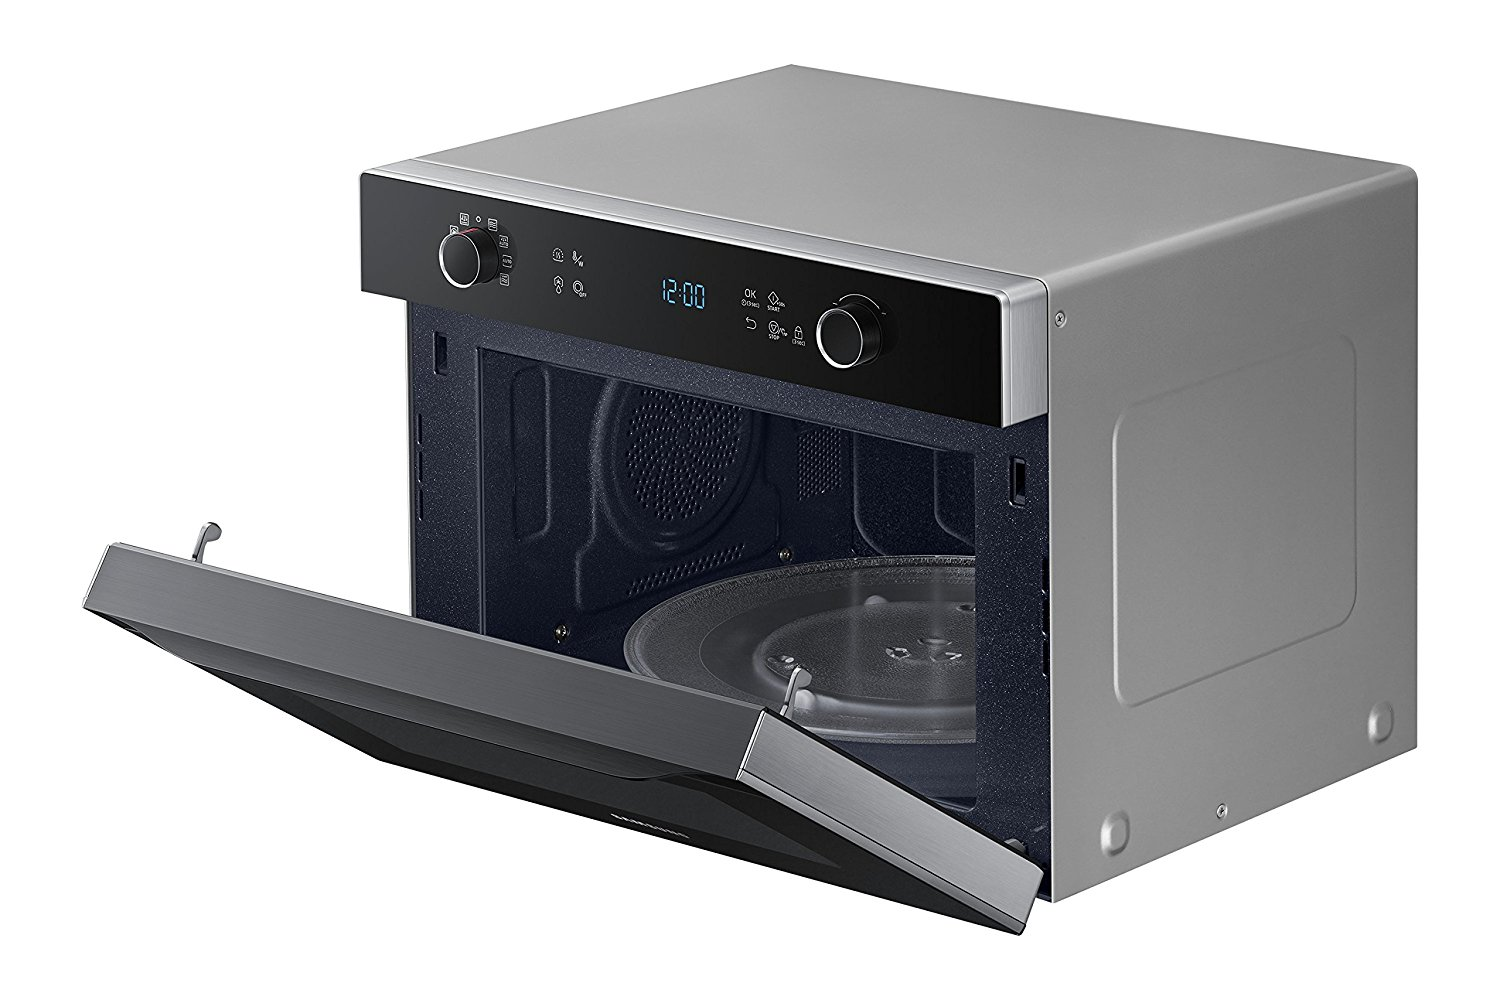 35 Liters Microwave Oven from Samsung Brand